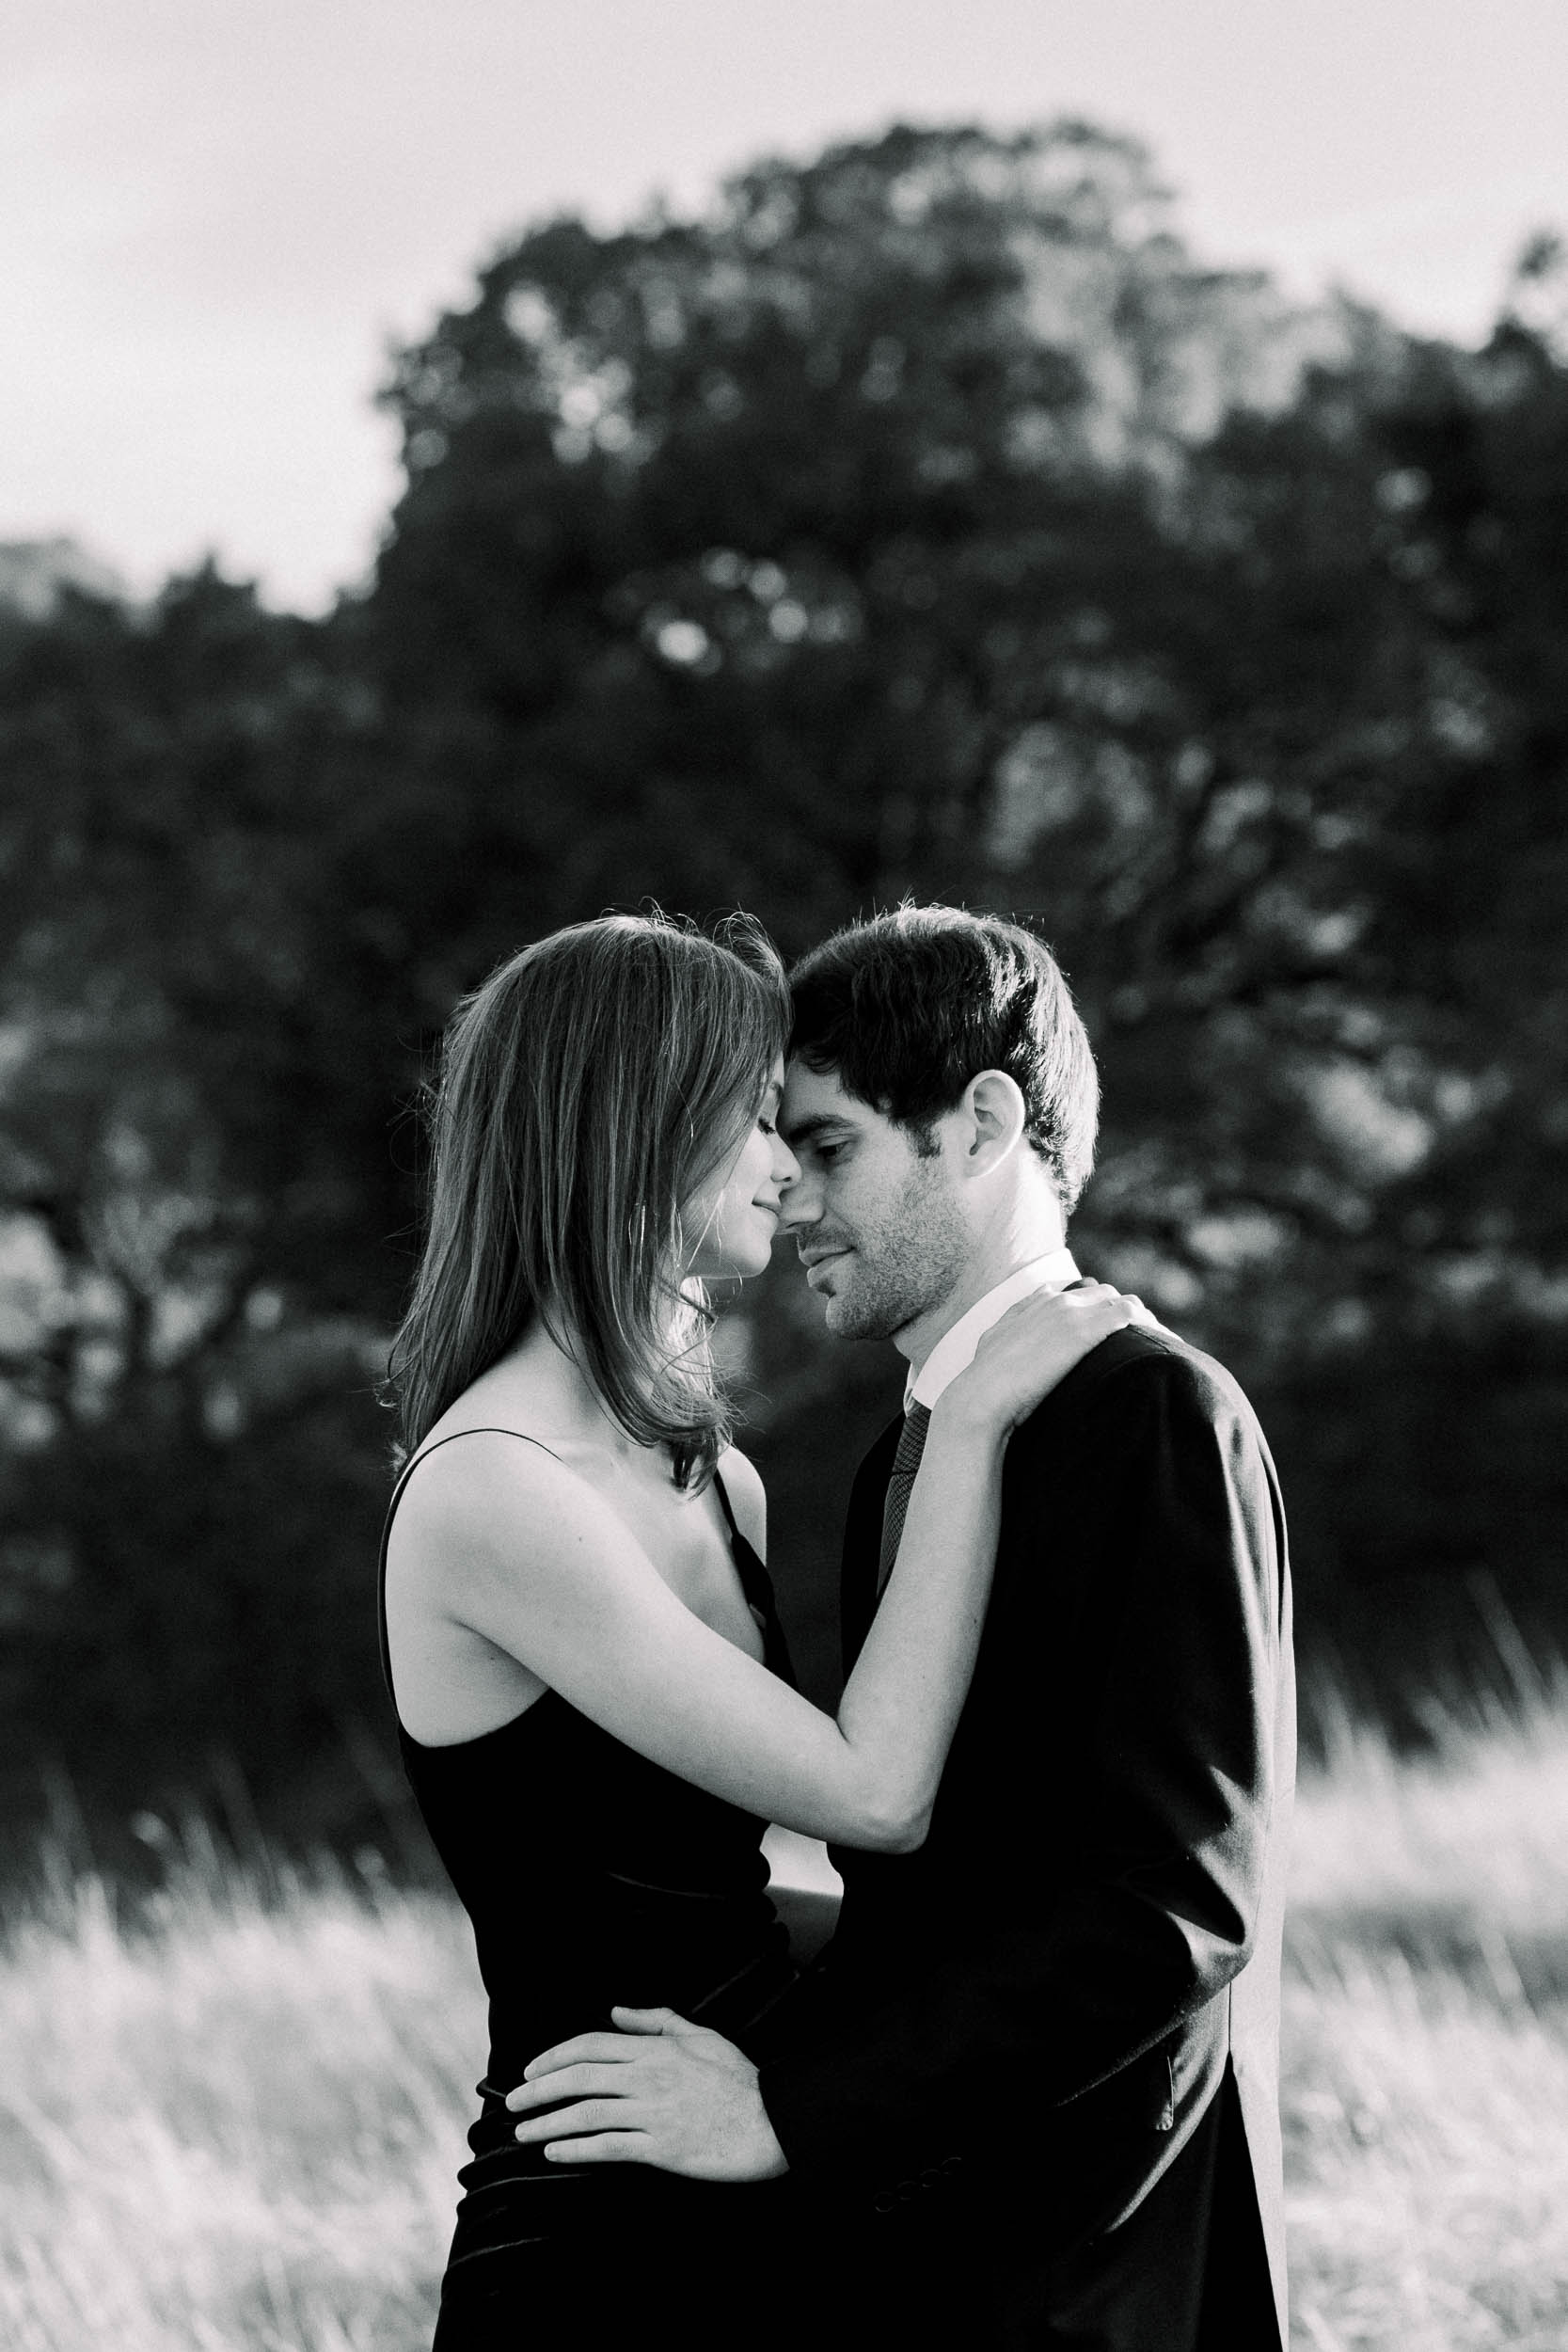 010319_E+J_Foothills Park Engagement_Buena Lane Photography_77.jpg